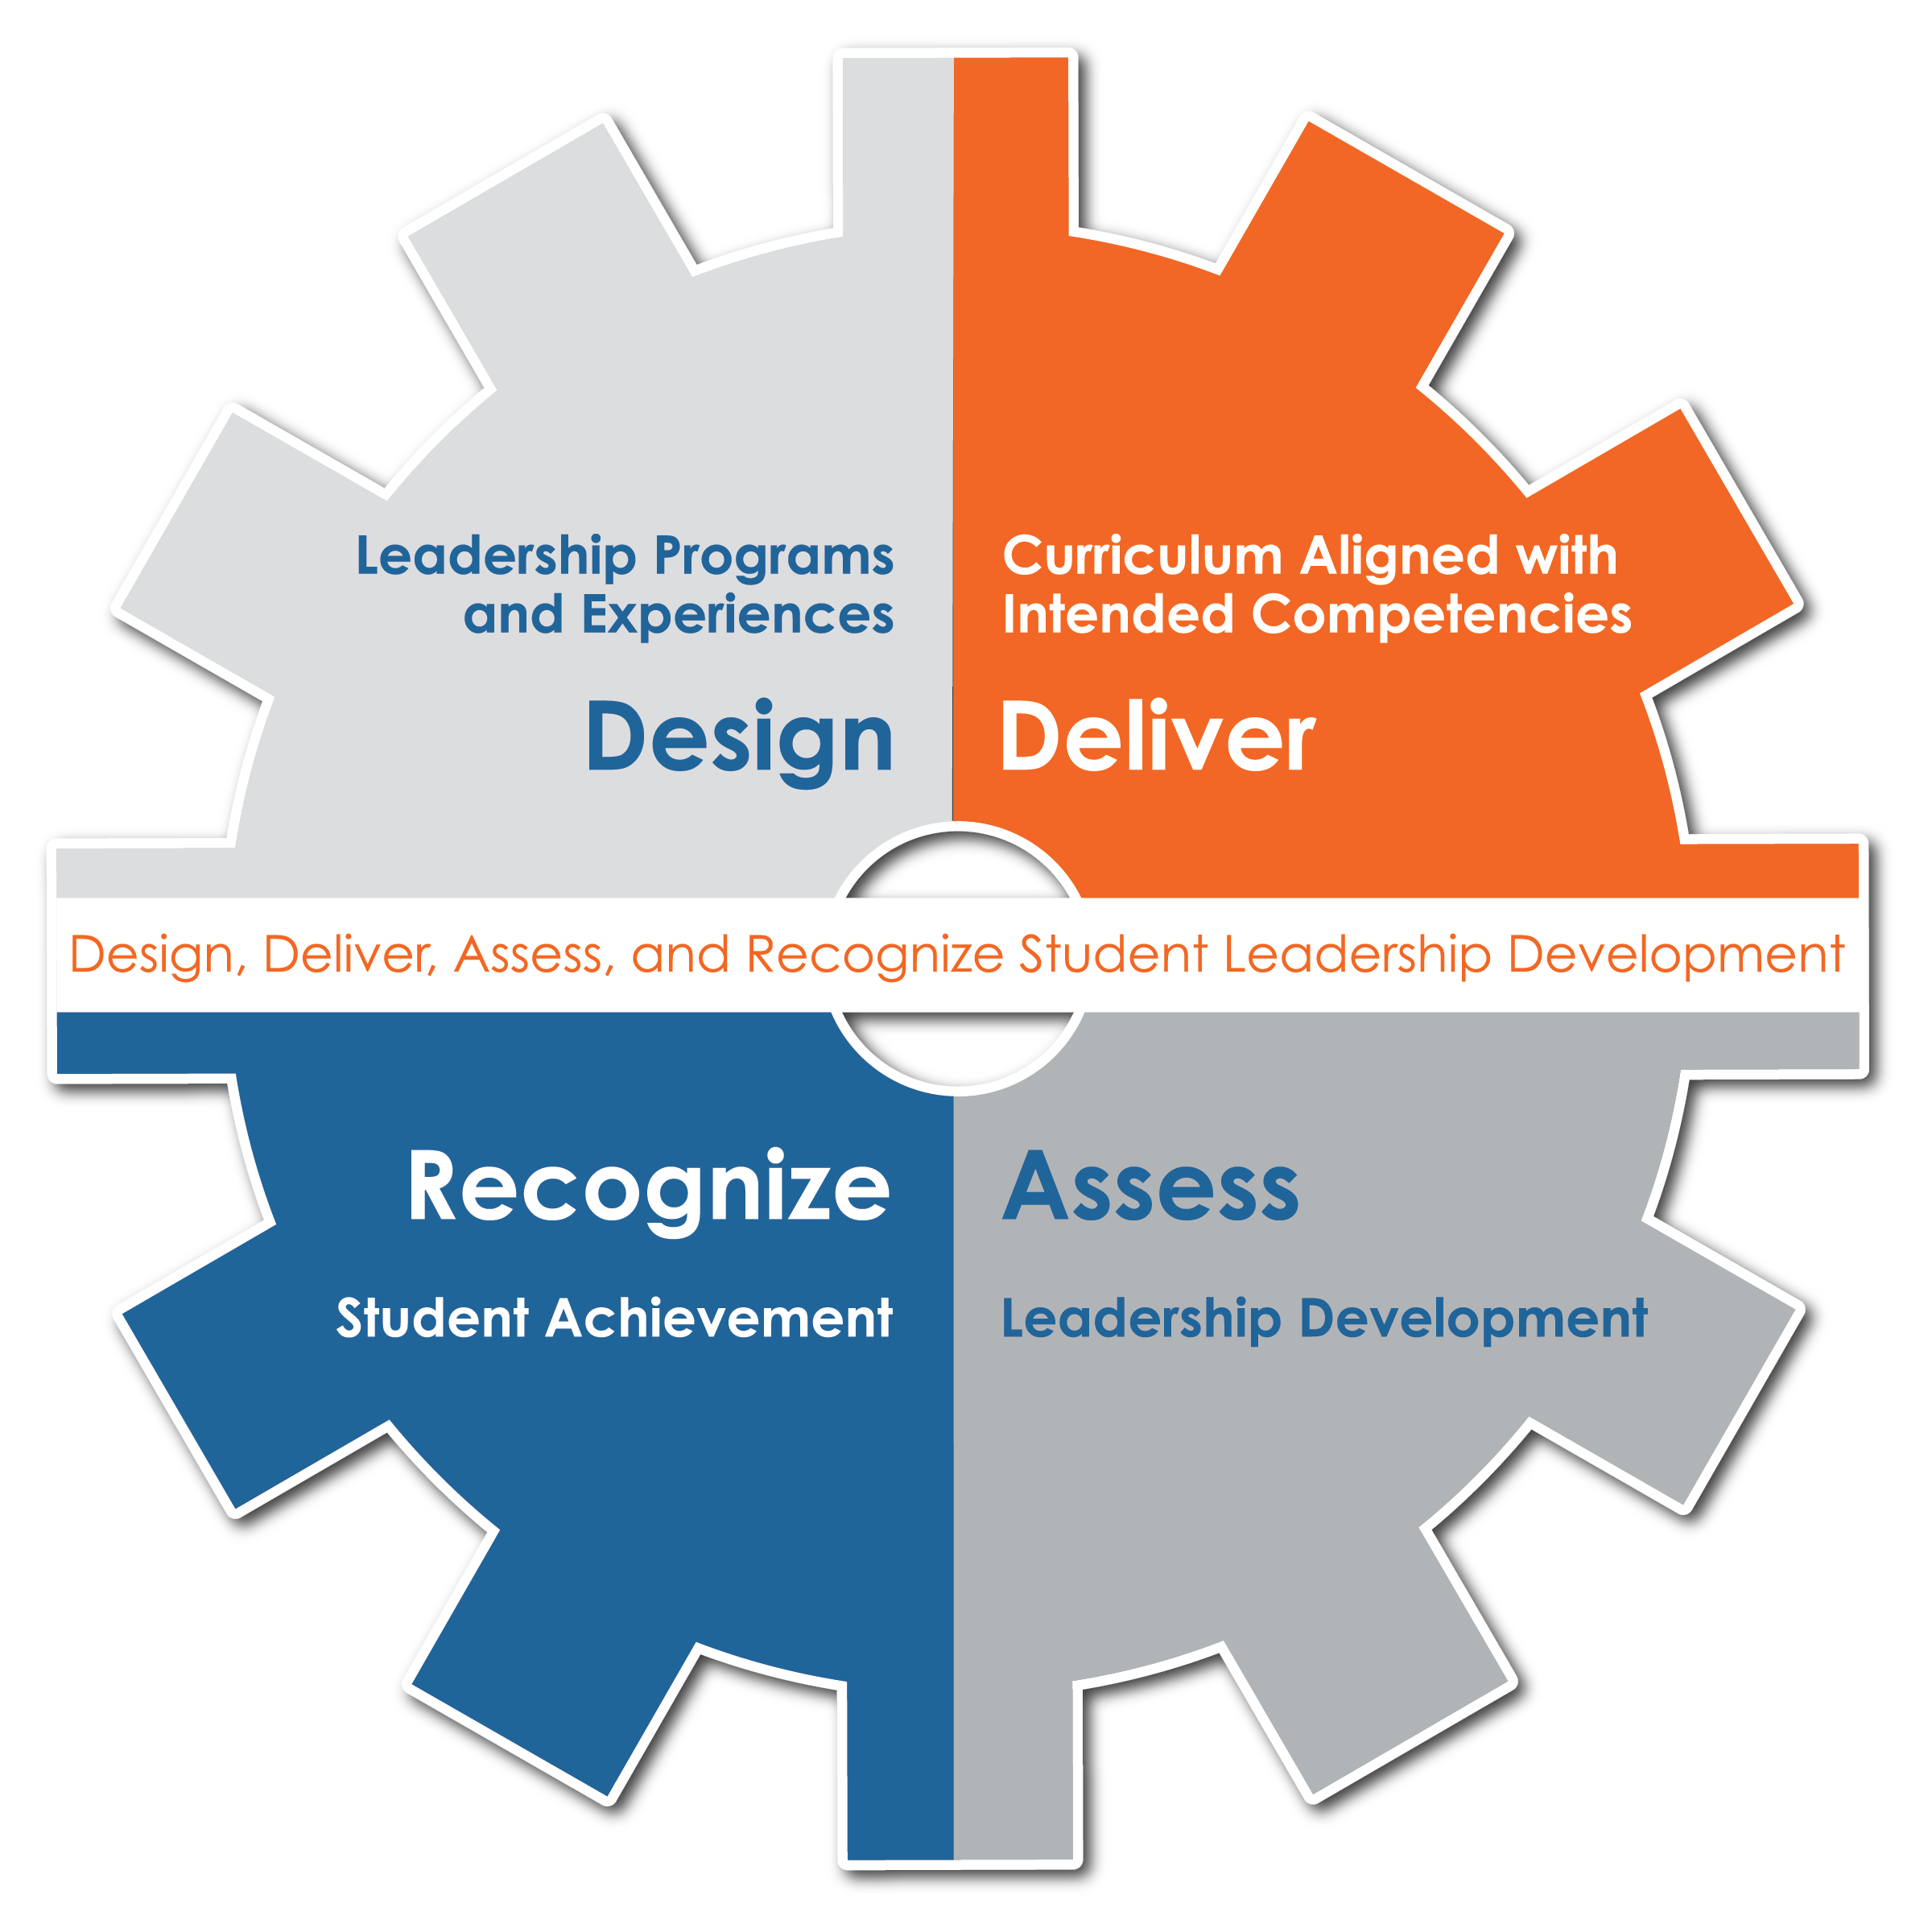 Design, Deliver, Assess, Recognize